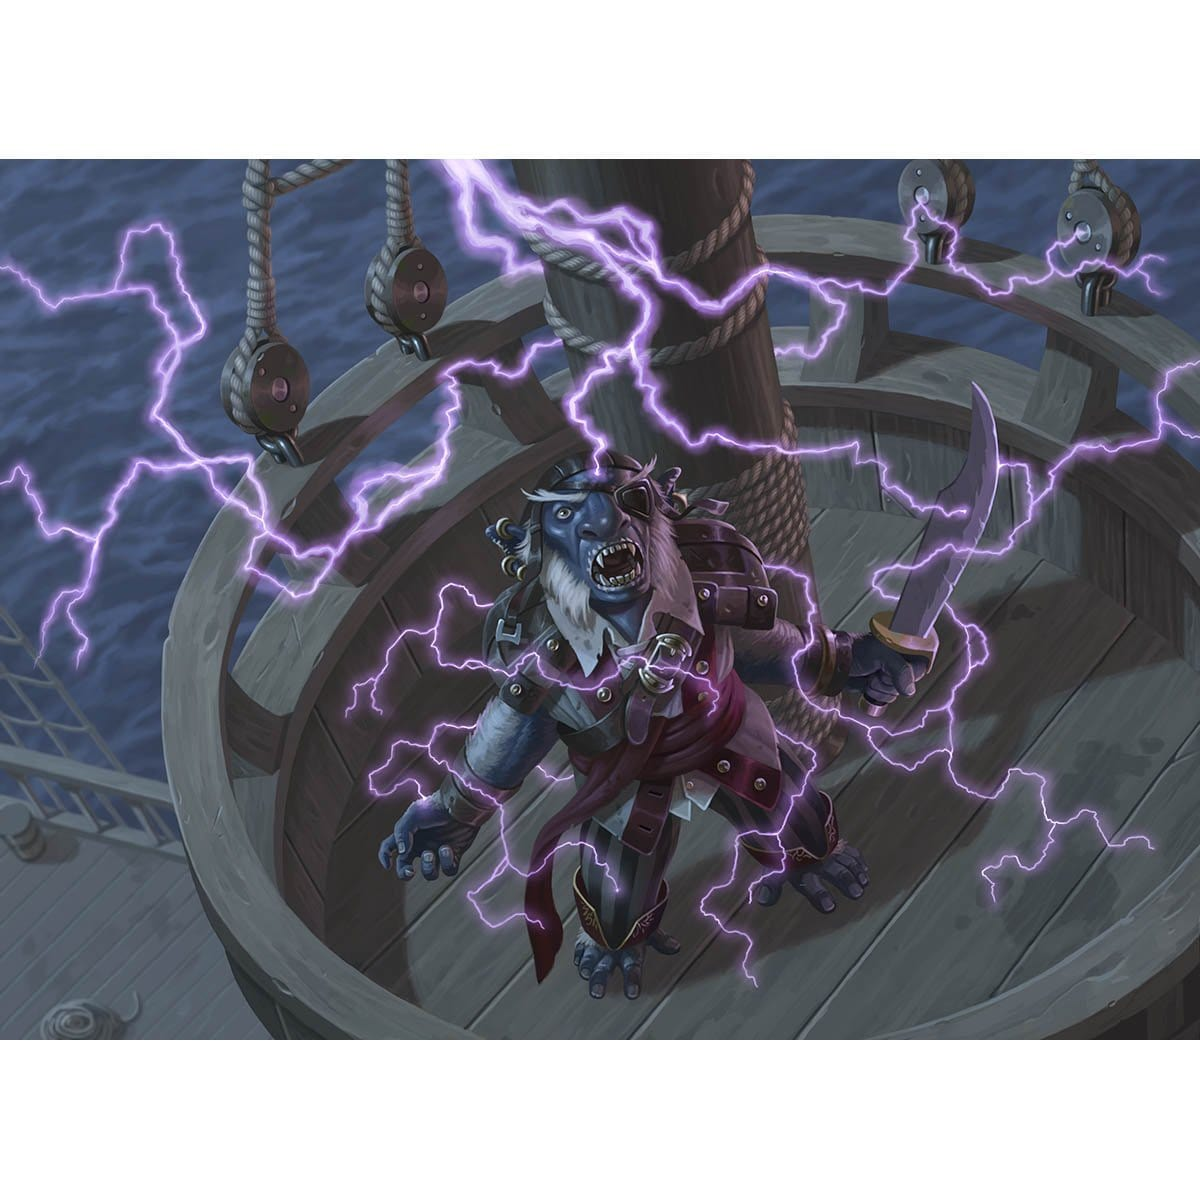 Lightning Strike Print - Print - Original Magic Art - Accessories for Magic the Gathering and other card games